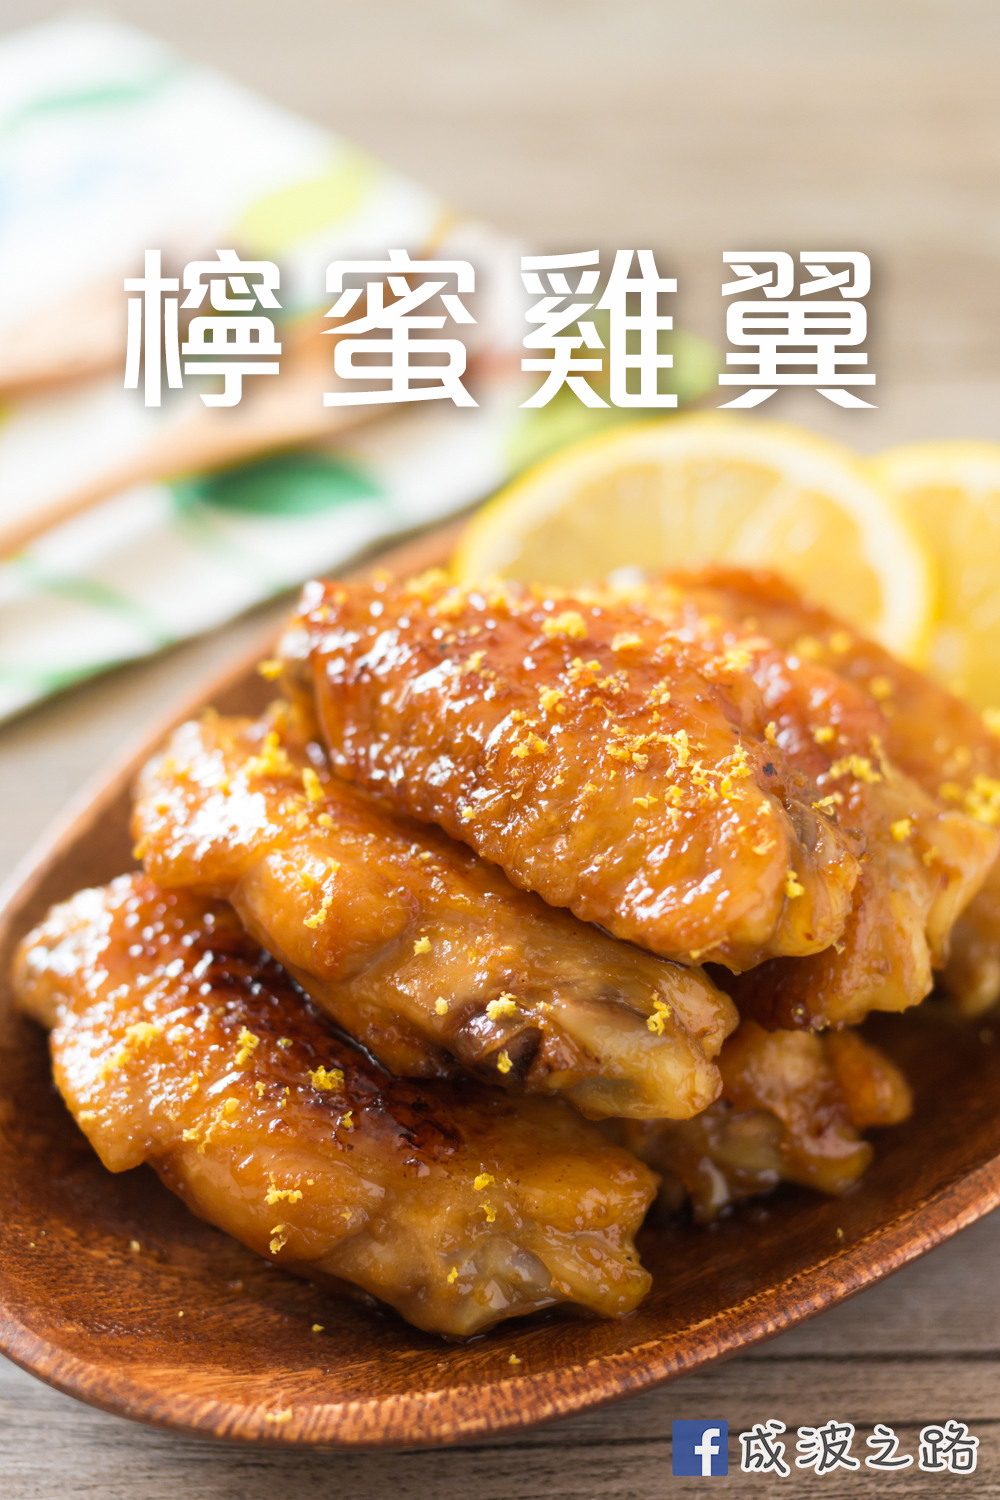 160820 - Lemon Honey Chicken Wings - 000